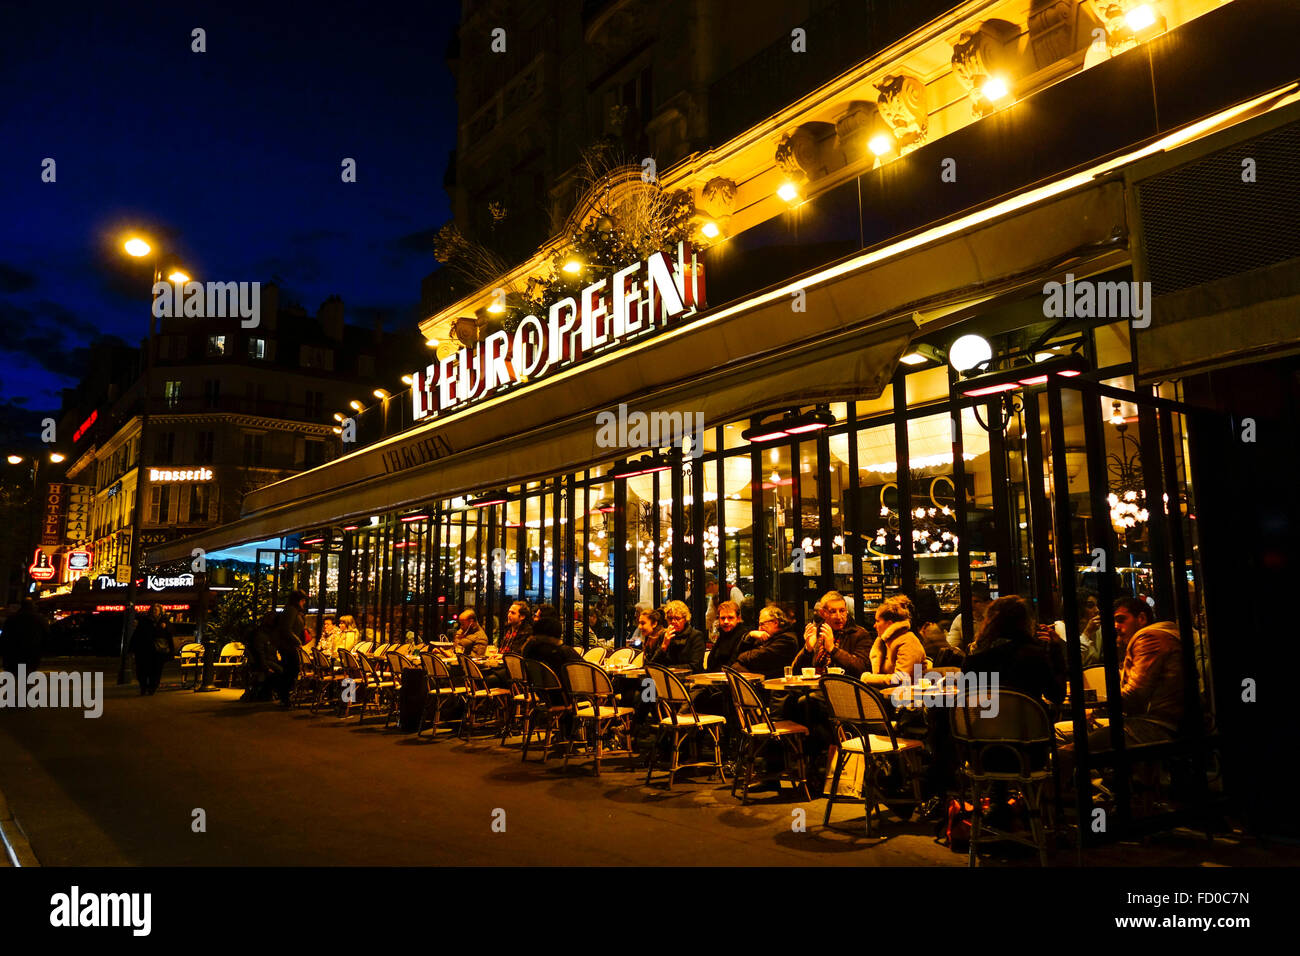 brasserie l 39 europeen restaurant at night with outside. Black Bedroom Furniture Sets. Home Design Ideas